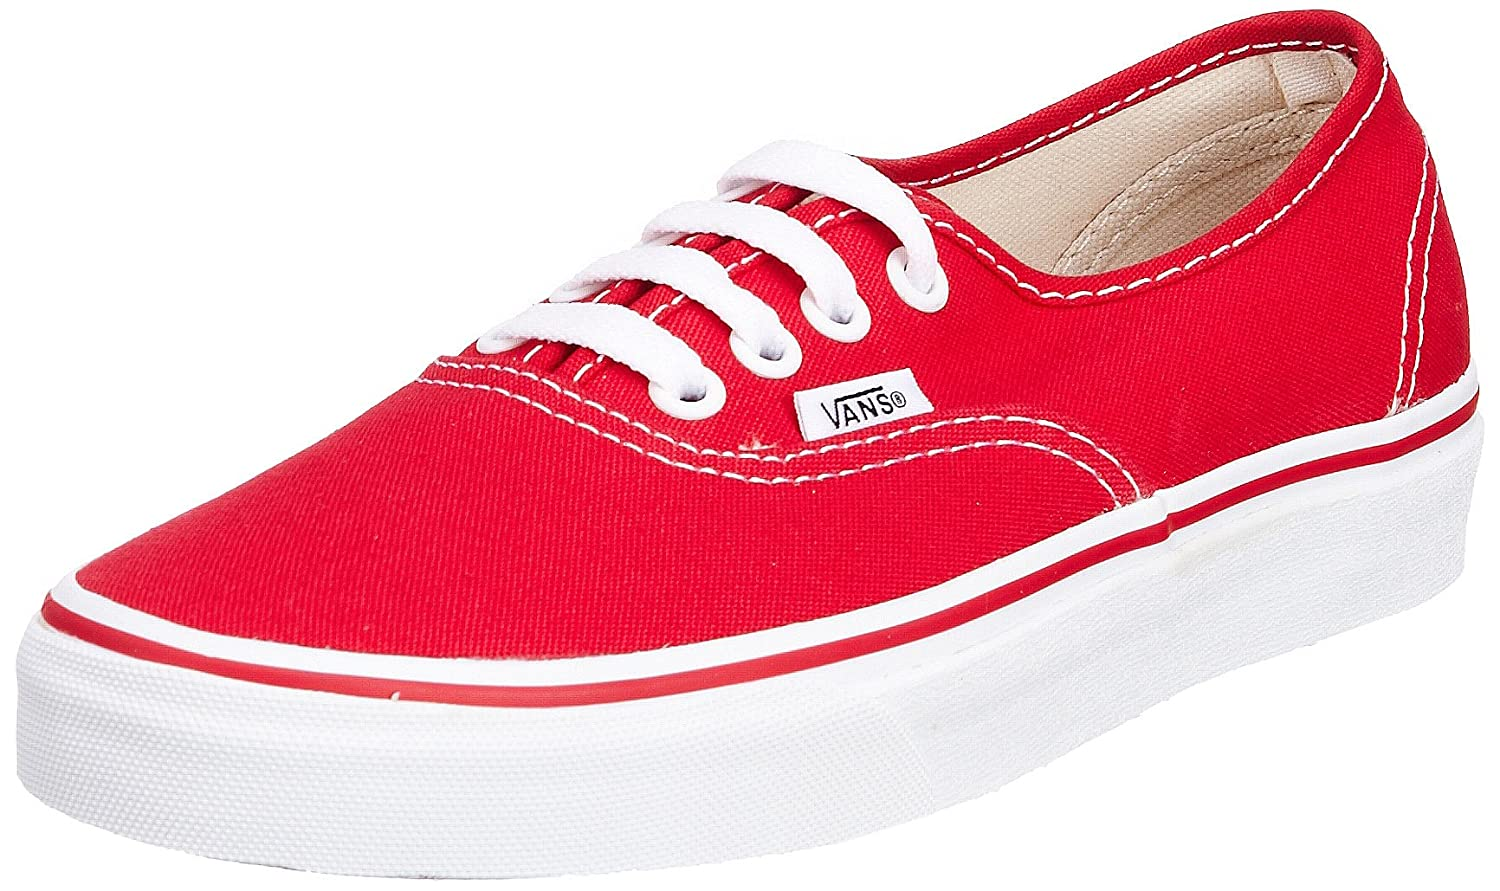 Vans Herren Authentic Core Classic Sneakers B001DCZAQ8 13 B(M) US Women / 11.5 D(M) US Men|Red